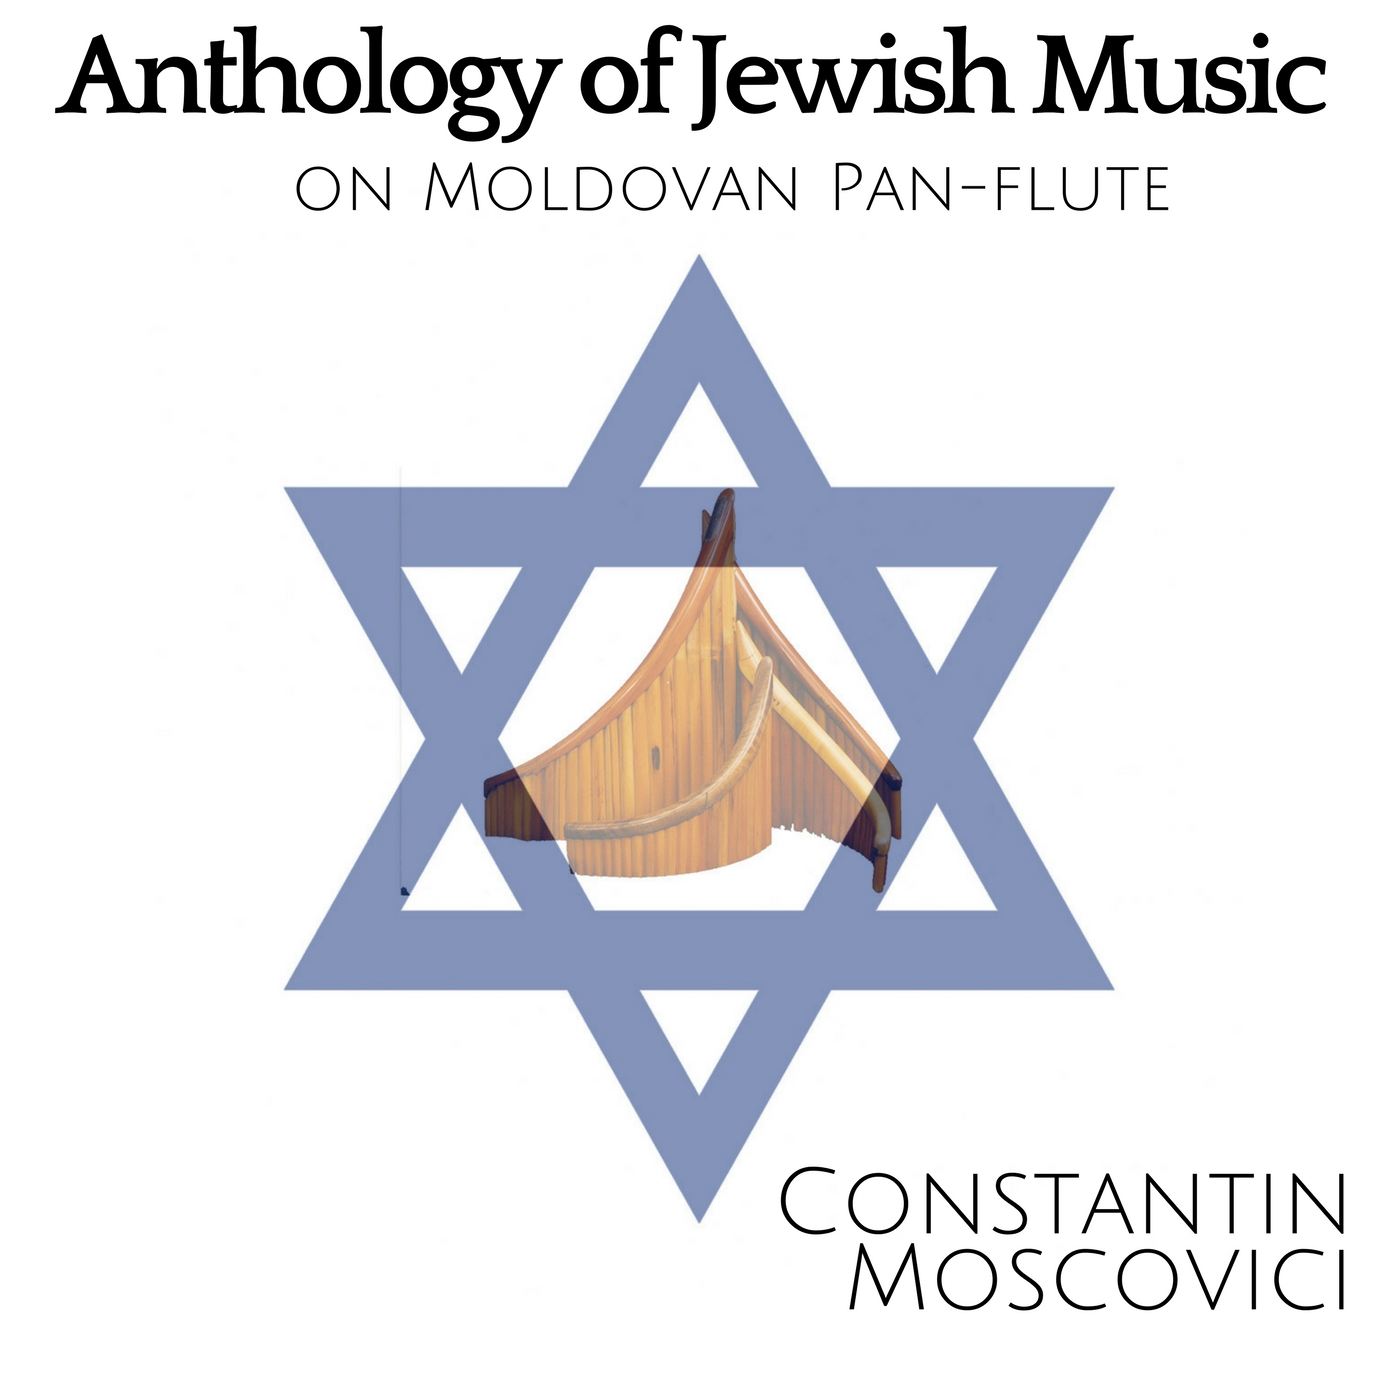 Anthology of Jewish Music on Moldavian Pan Flute